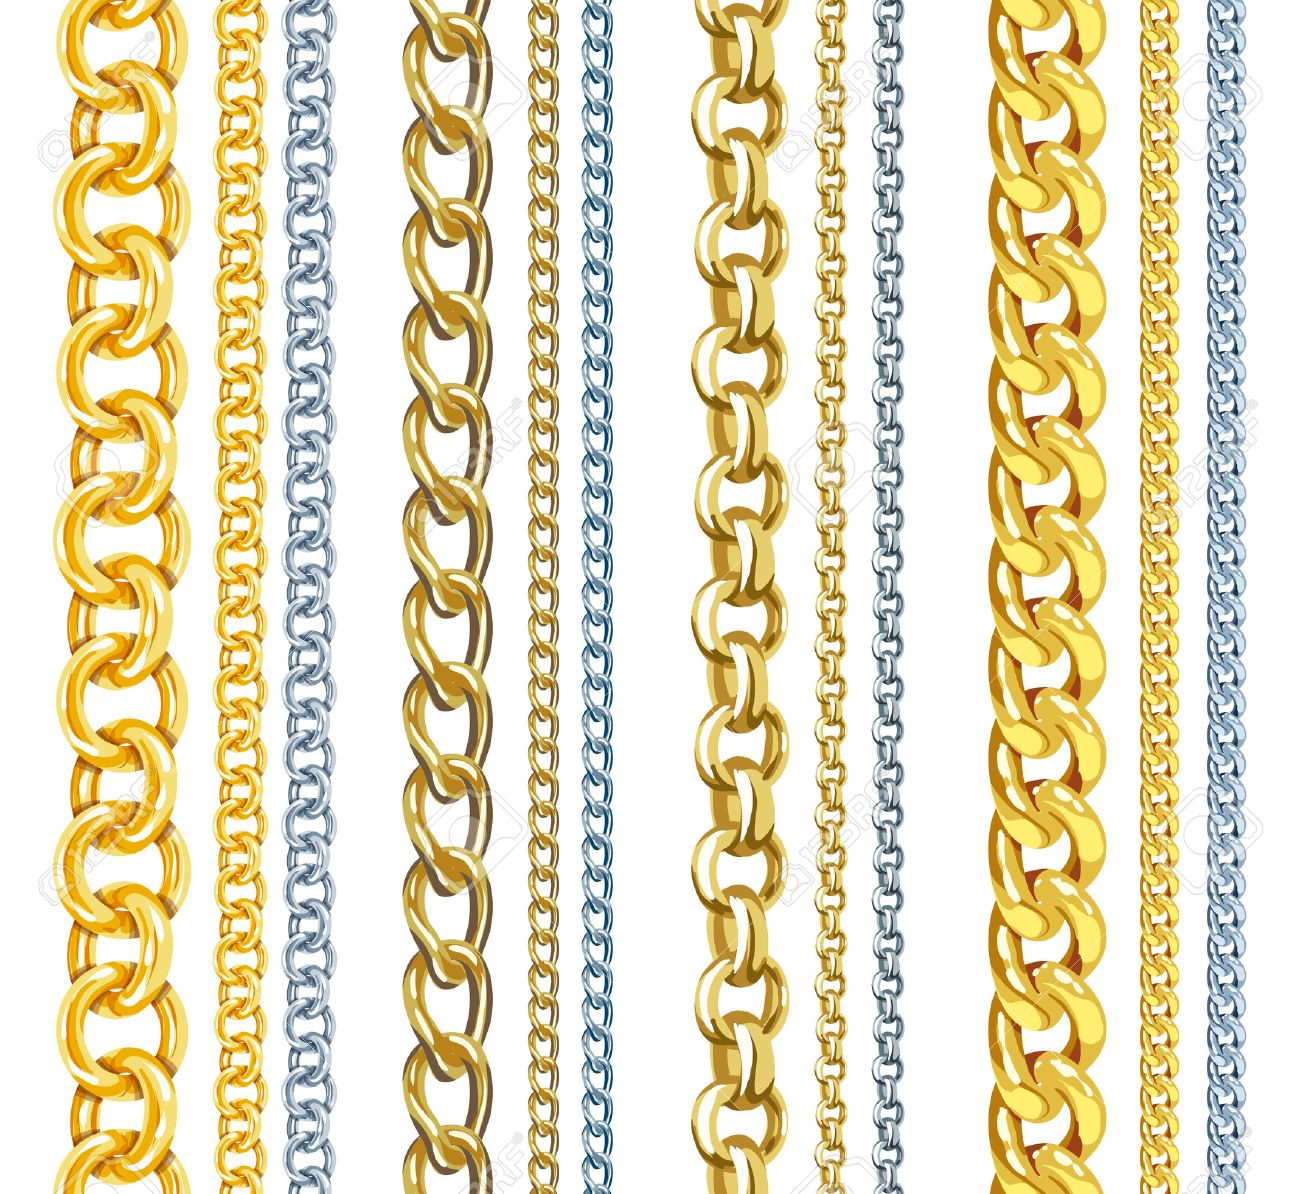 Set of realistic vector gold and silver chains - 31628880